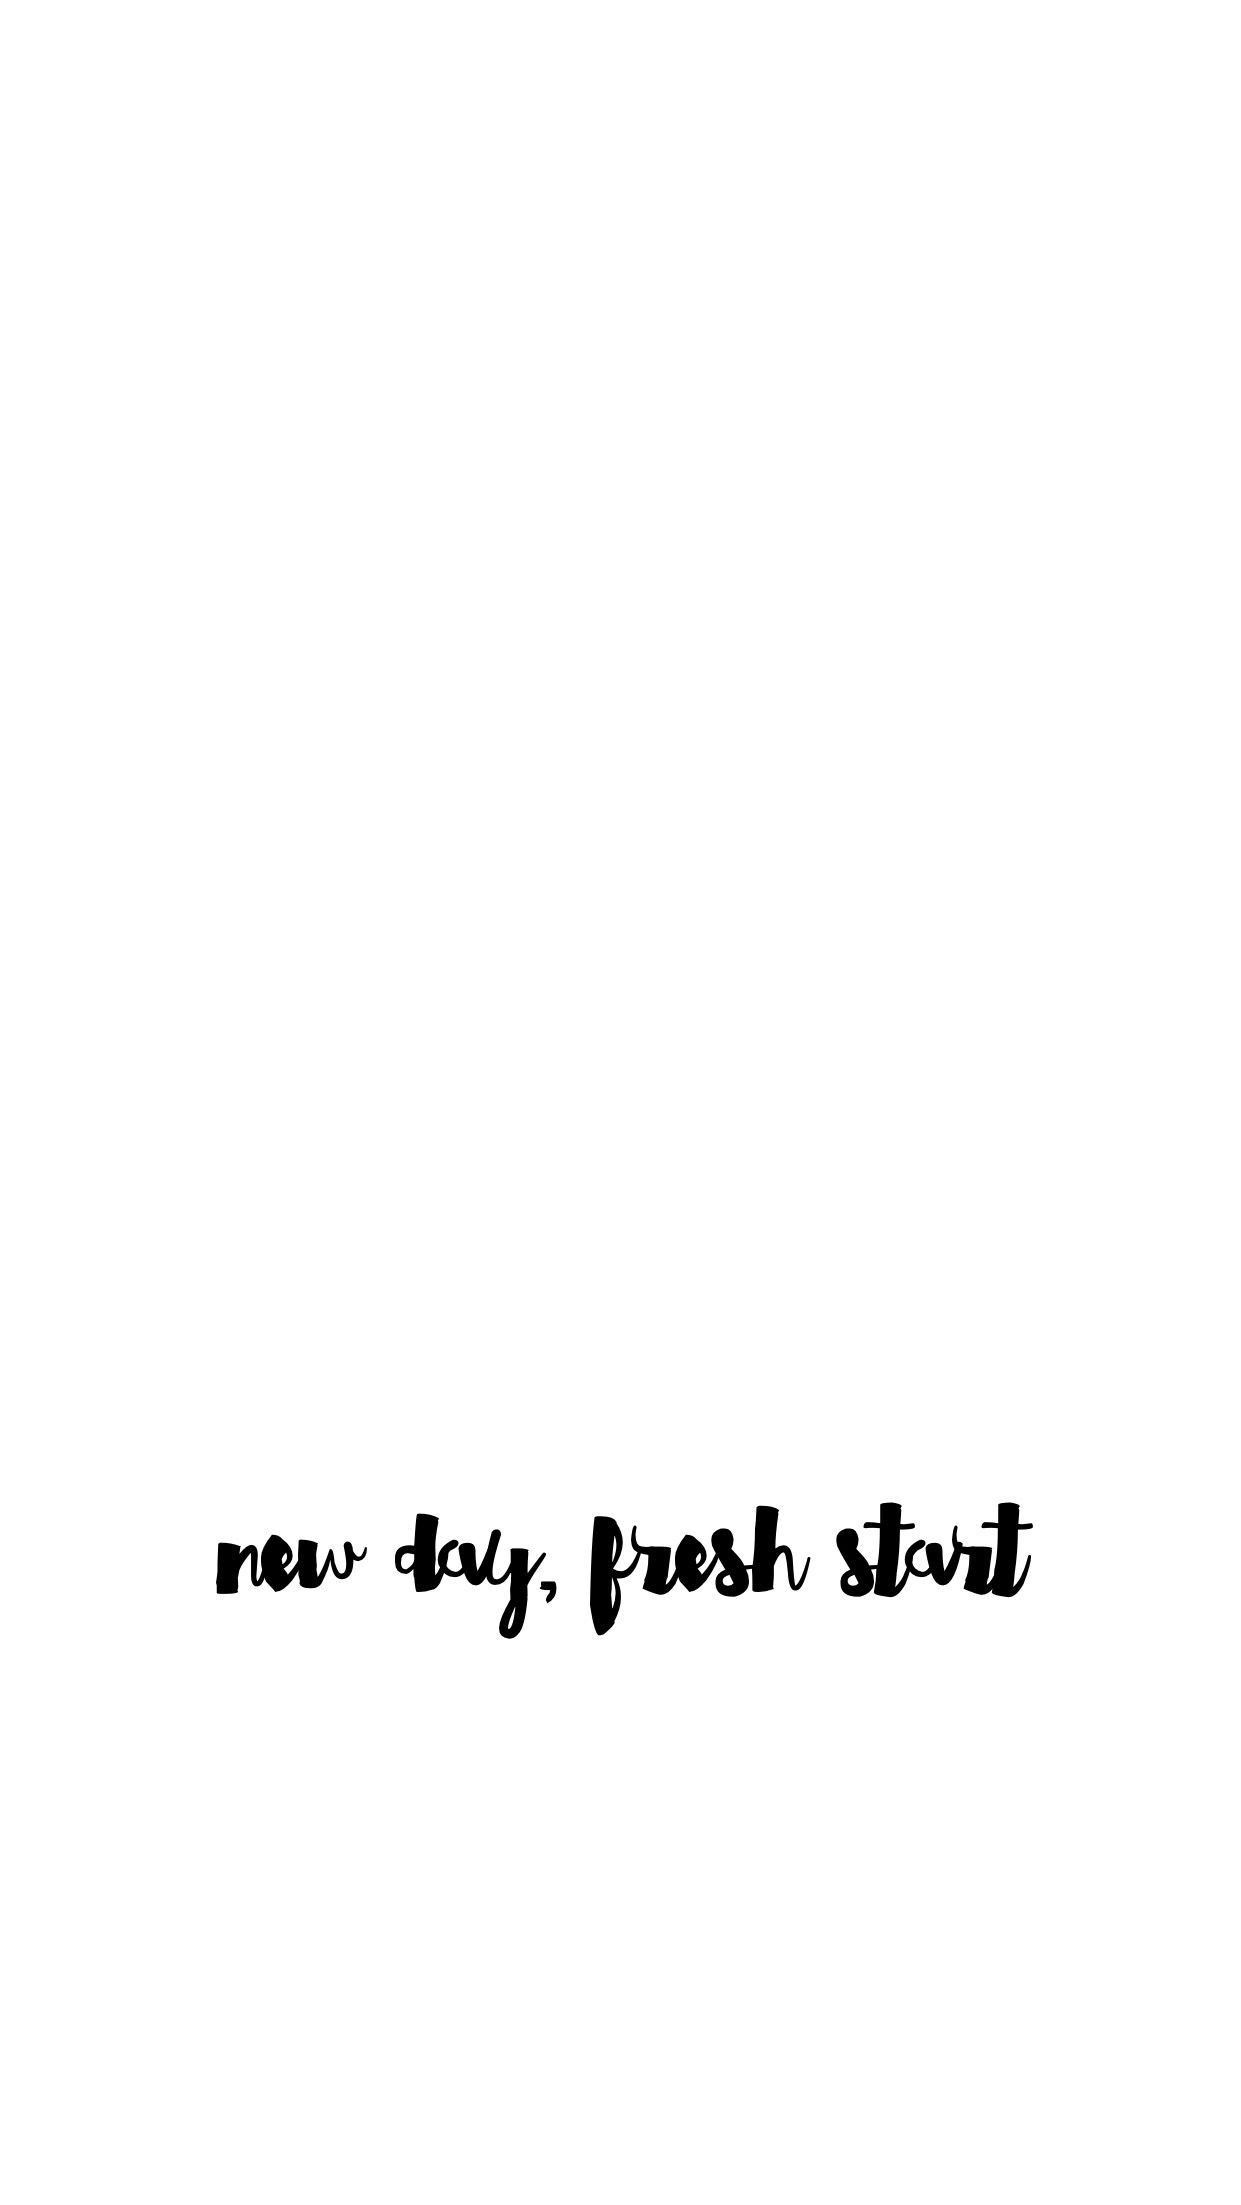 Https All Images Net Simple White Backgrounds Tumblr Awesome Iphone Wallpaper Tumb Inspirational Quotes Wallpapers Iphone Wallpaper Quotes Funny Quotes White